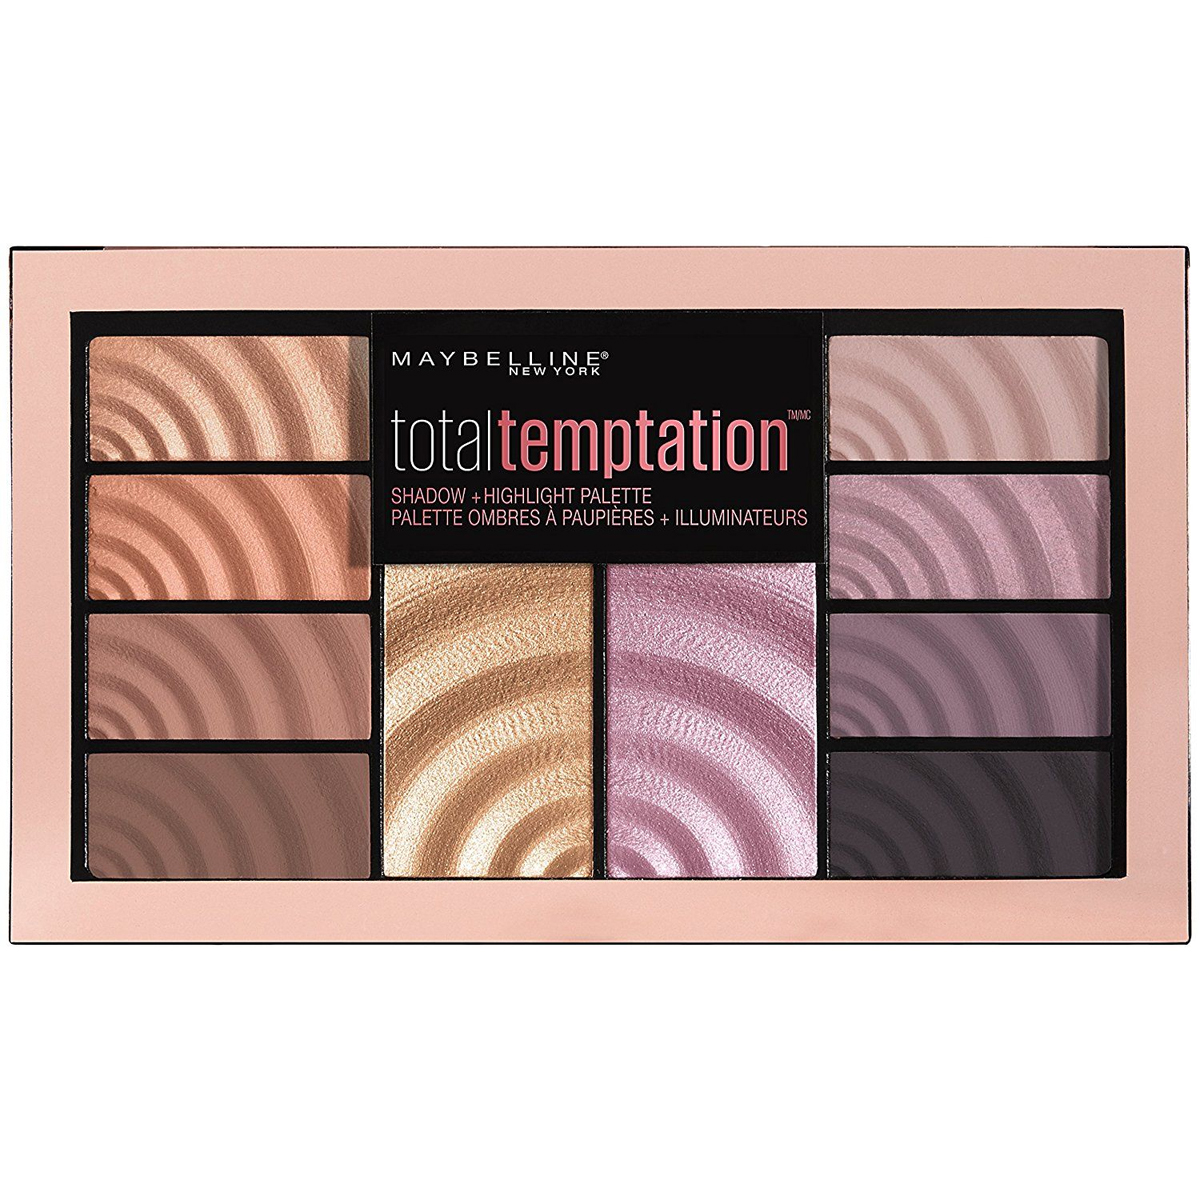 Maybelline Total Temptation Far ve Aydınlatıcı Palet Eyeshadow Highlight Palette